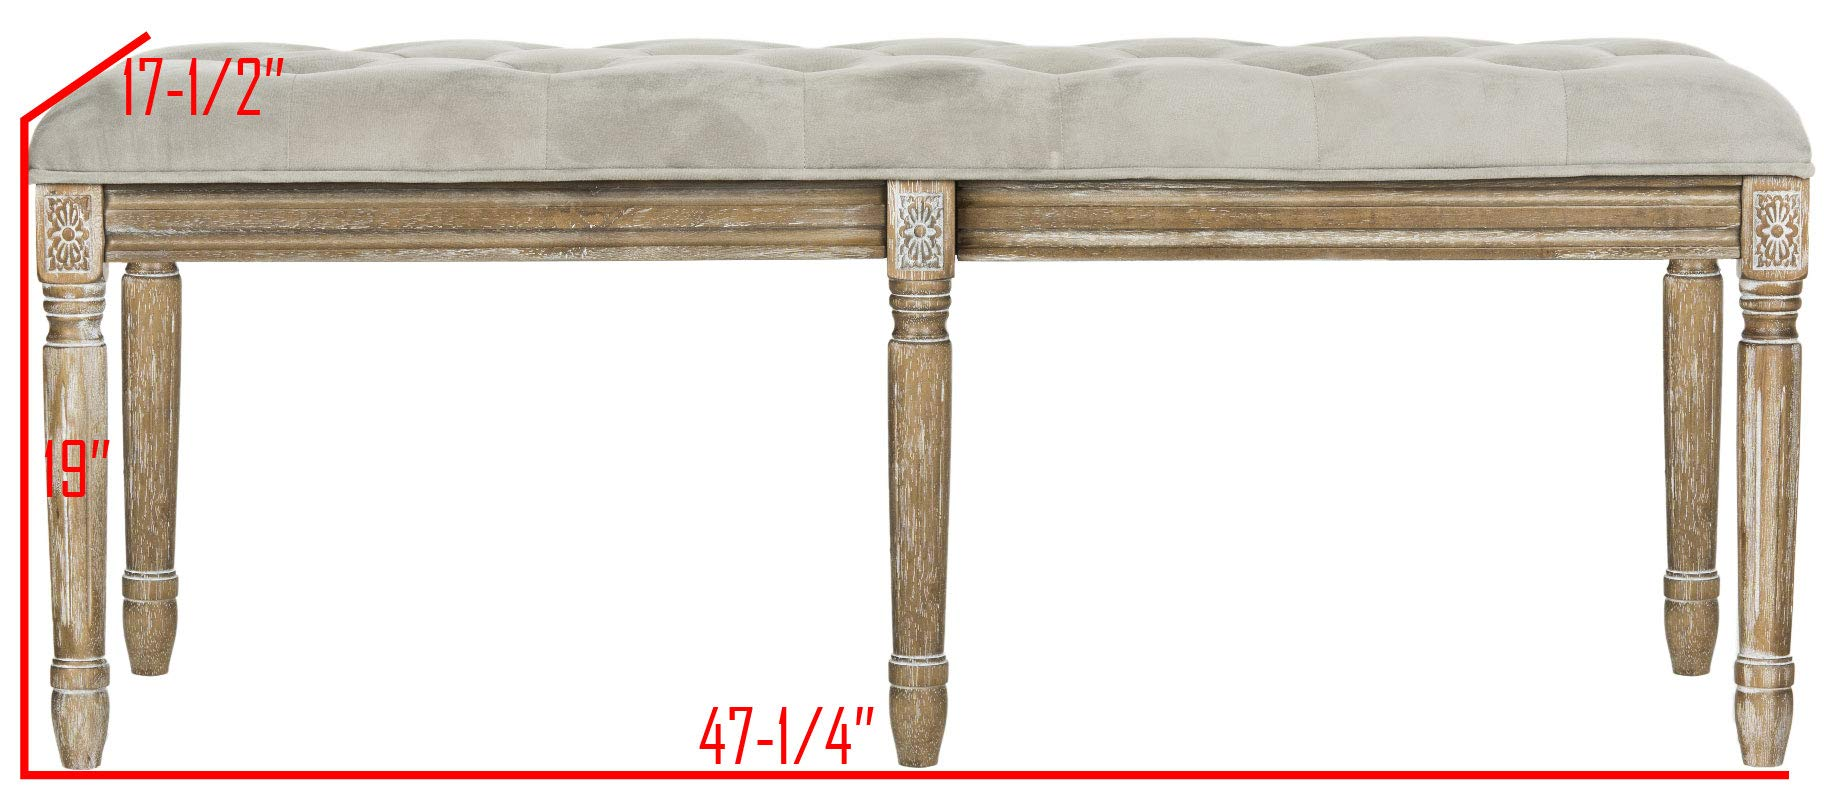 Safavieh Home Collection Rocha French Brasserie Tufted Grey and Rustic Oak 19-inch Wood Bench by Safavieh (Image #5)